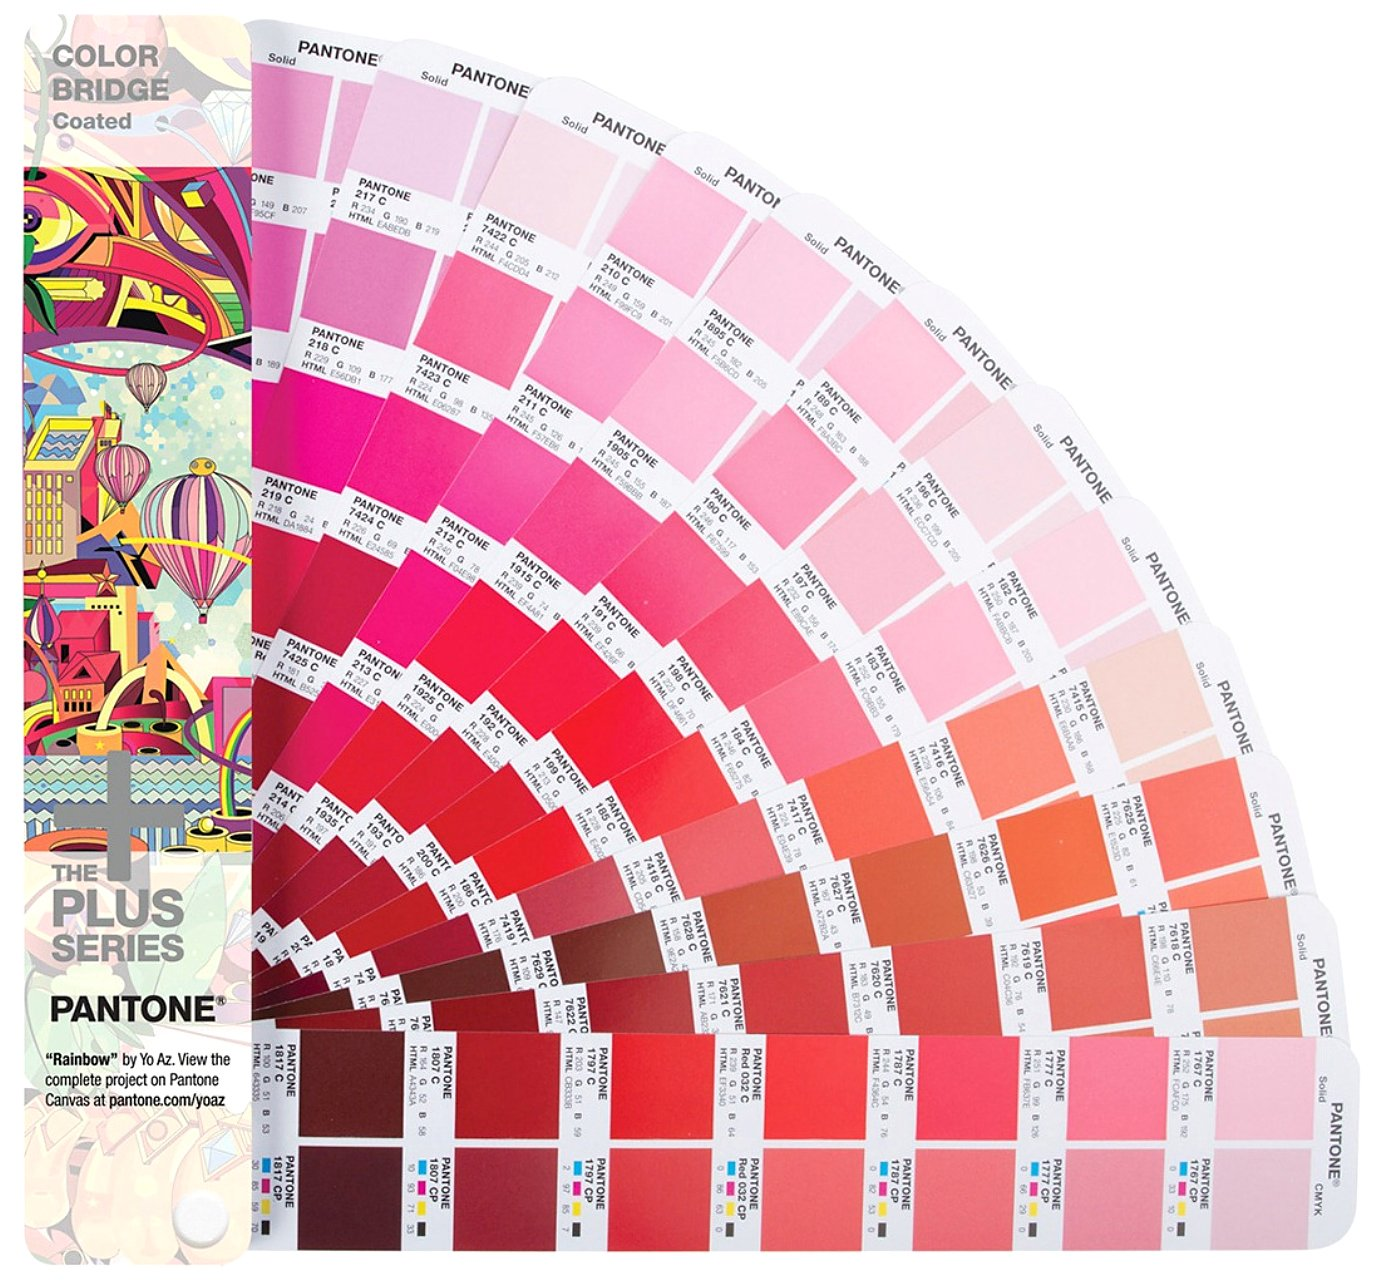 Pantone Color Bridge GG5103 Guide de couleur Multicolore